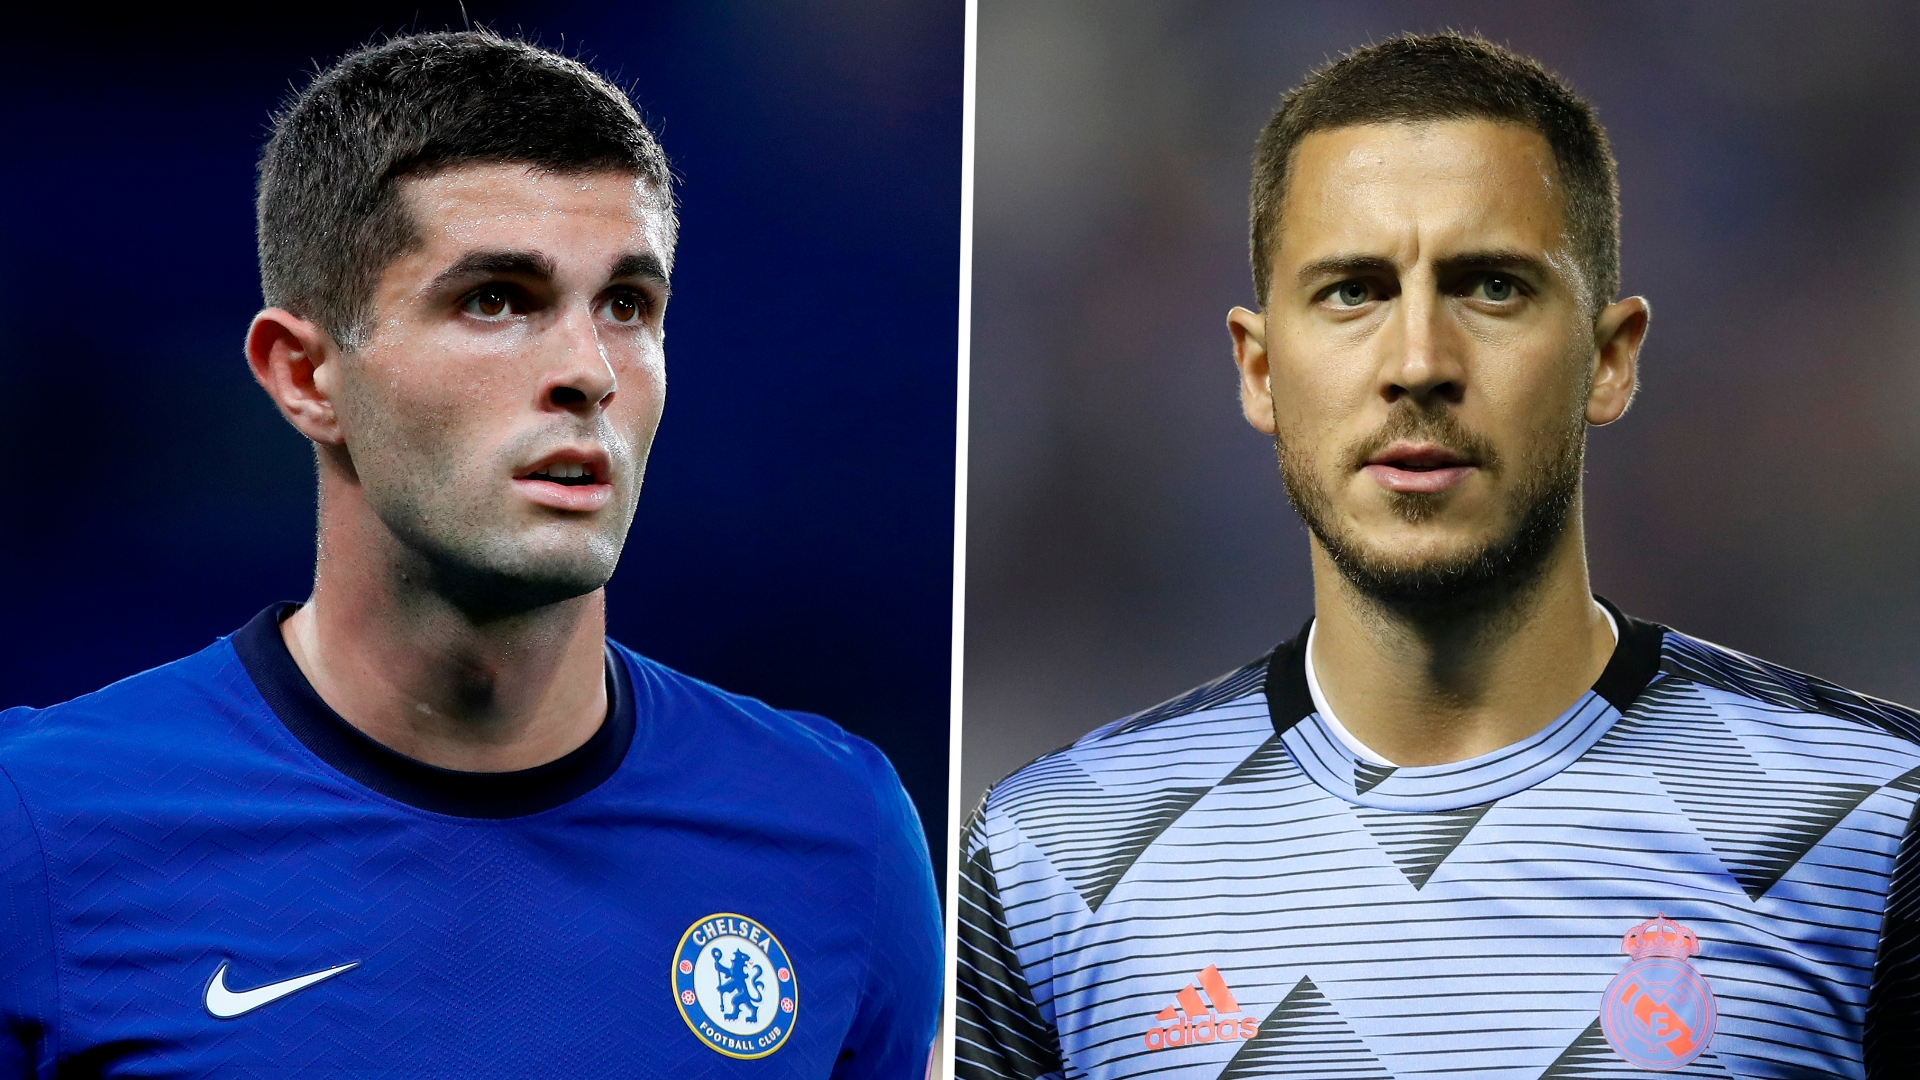 Pulisic flattered by Hazard comparisons but Chelsea winger won't model his game on Real Madrid star